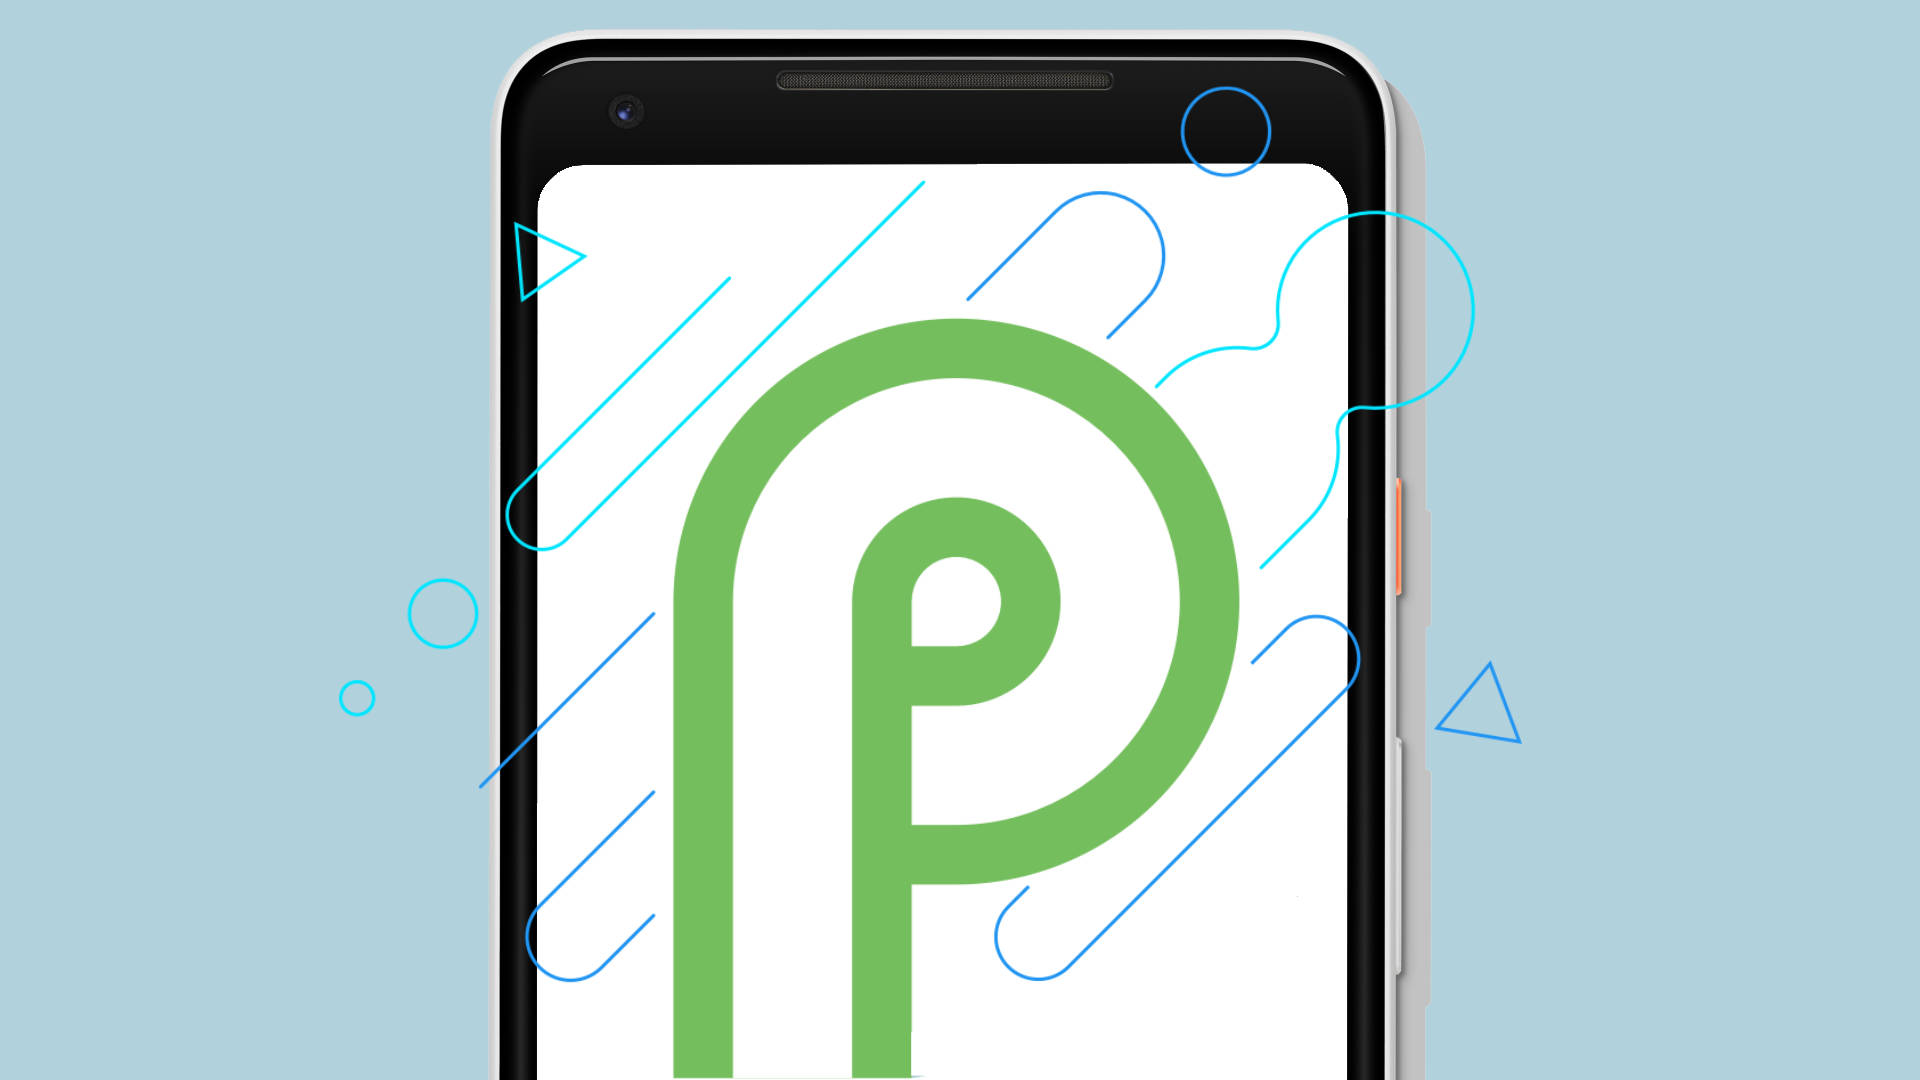 Android P beta 3 is ready for just about anyone to download